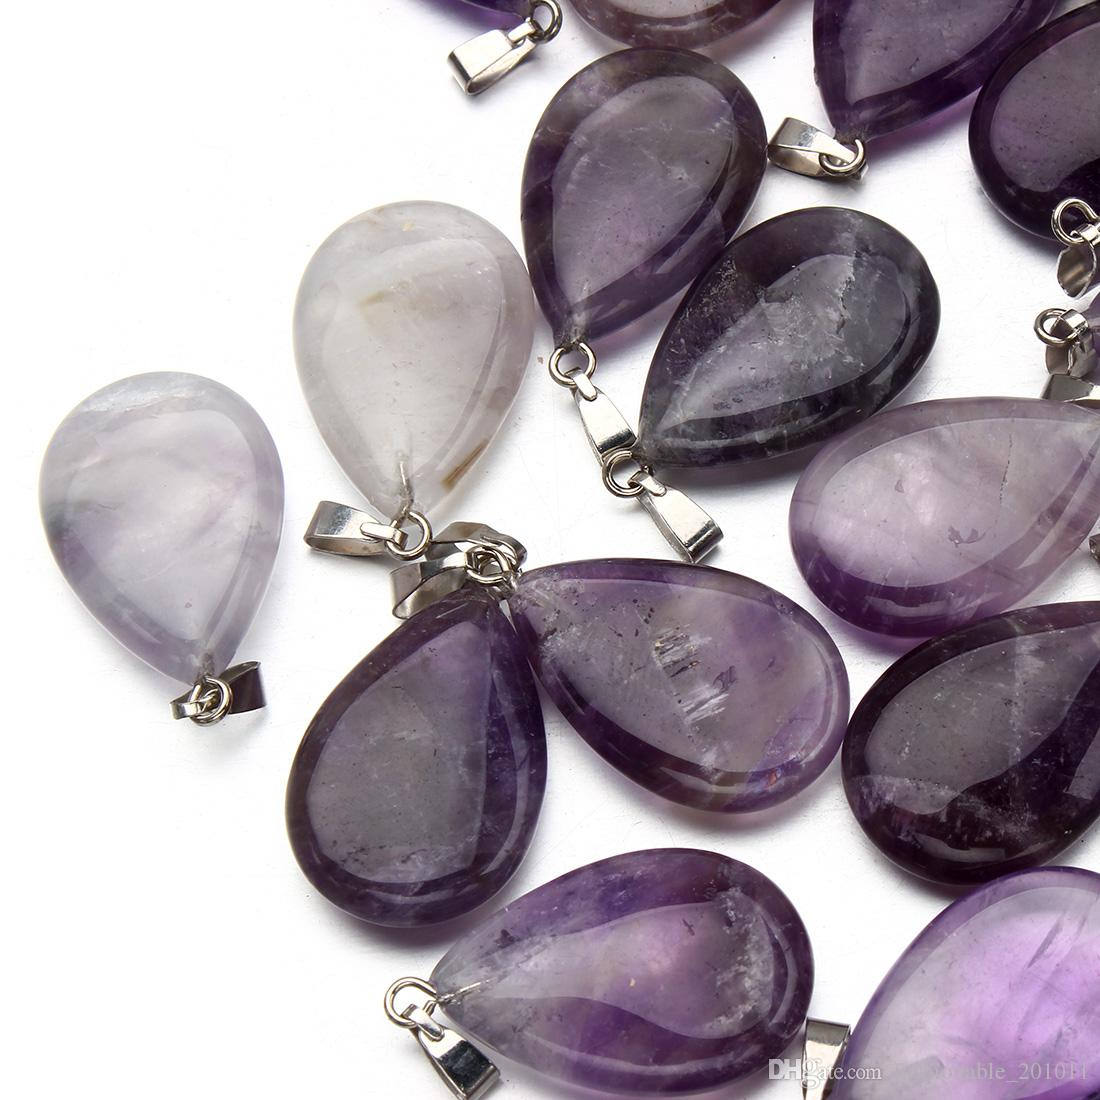 Drop Purple Amethyst Jewelry natural Gemstone Pendants High Polished Loose Beads Silver Plated Hook Fit Bracelets and Necklace DIY